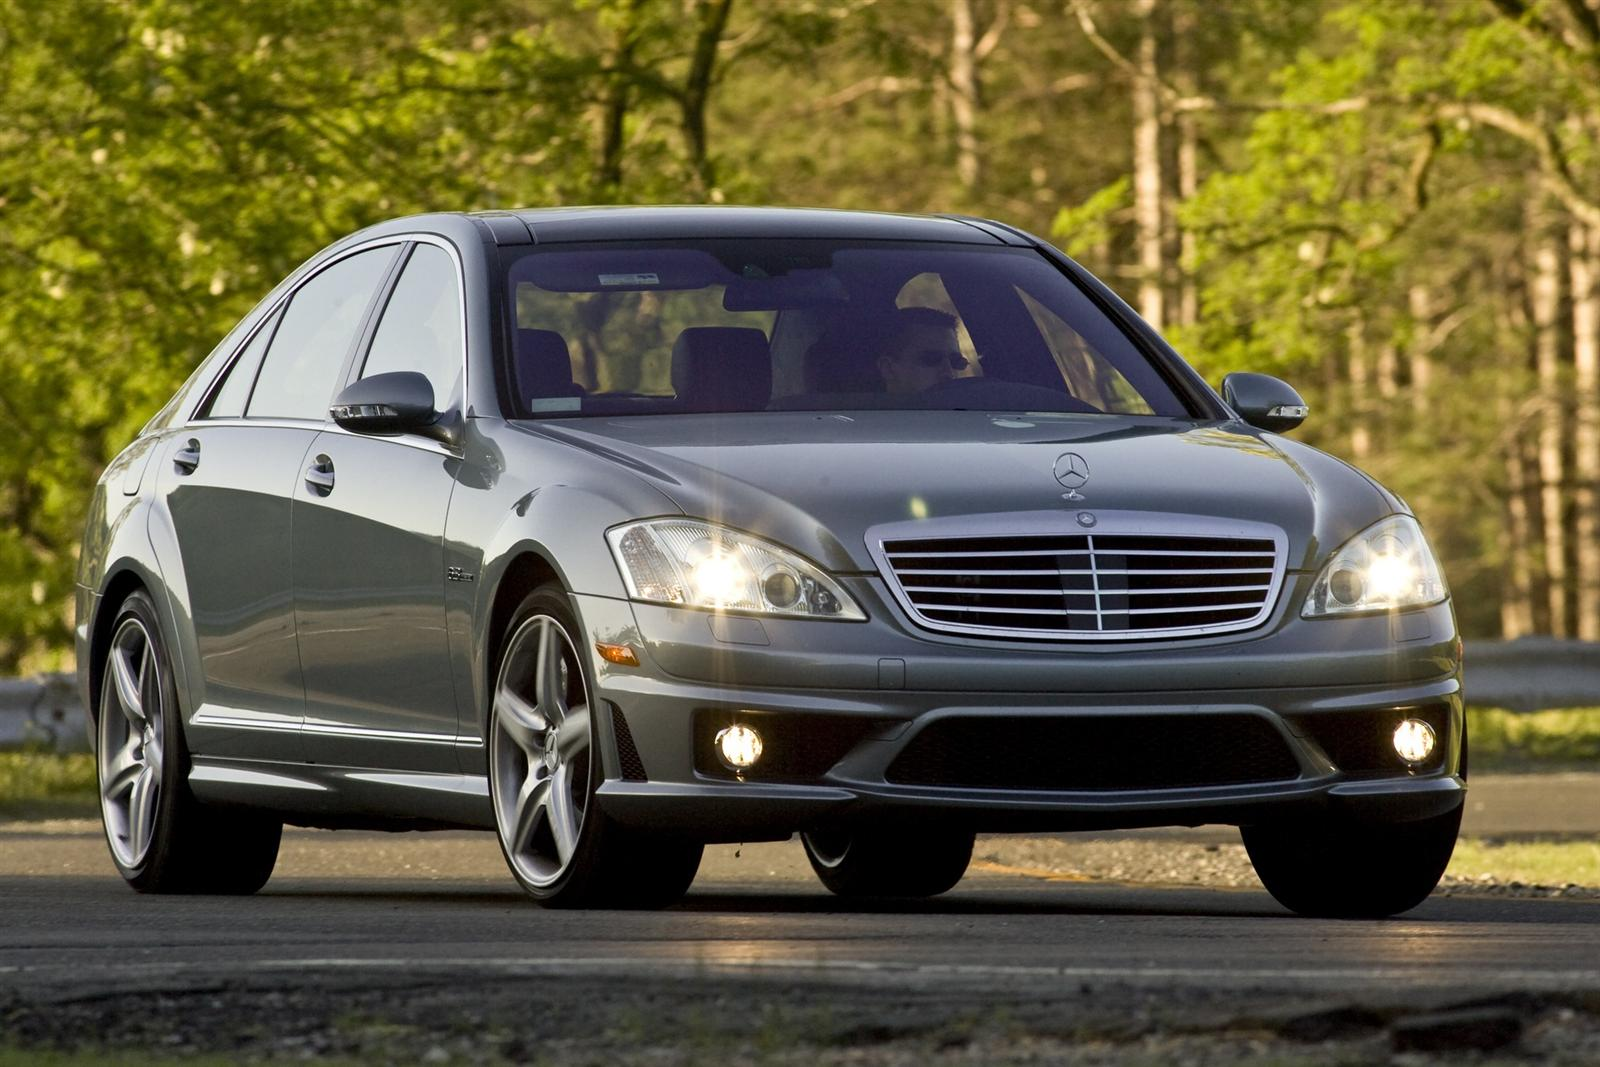 2008 mercedes benz s class image for Mercedes benz 2008 s550